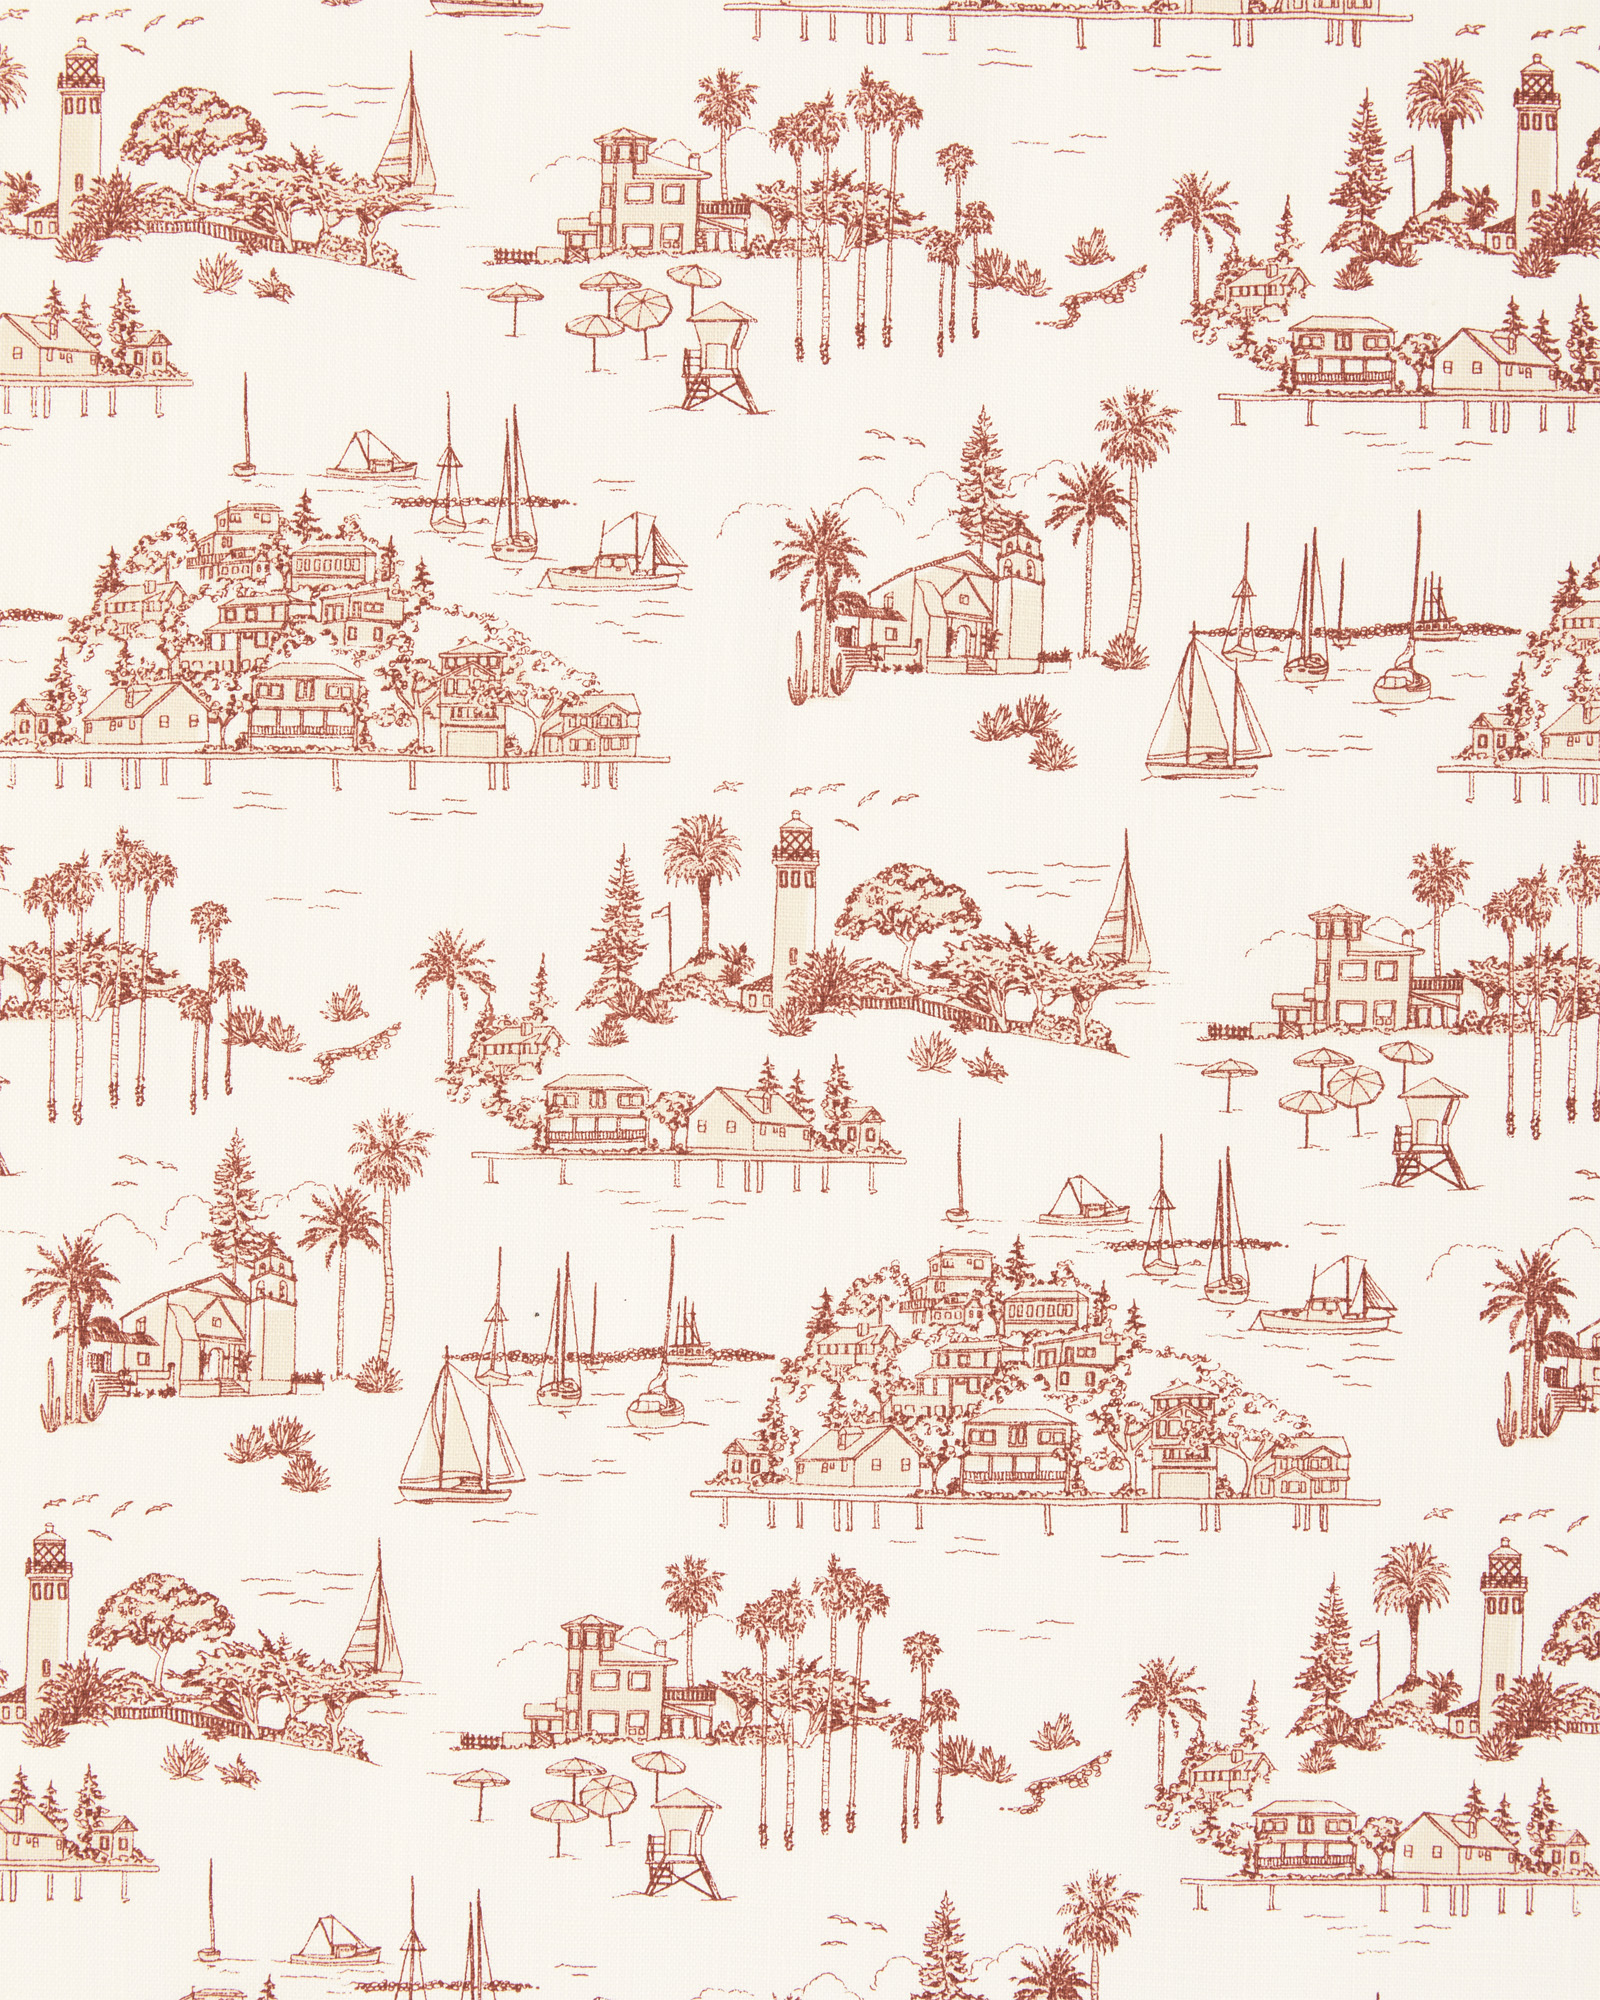 Fabric by the Yard - Seahaven Linen, Terracotta